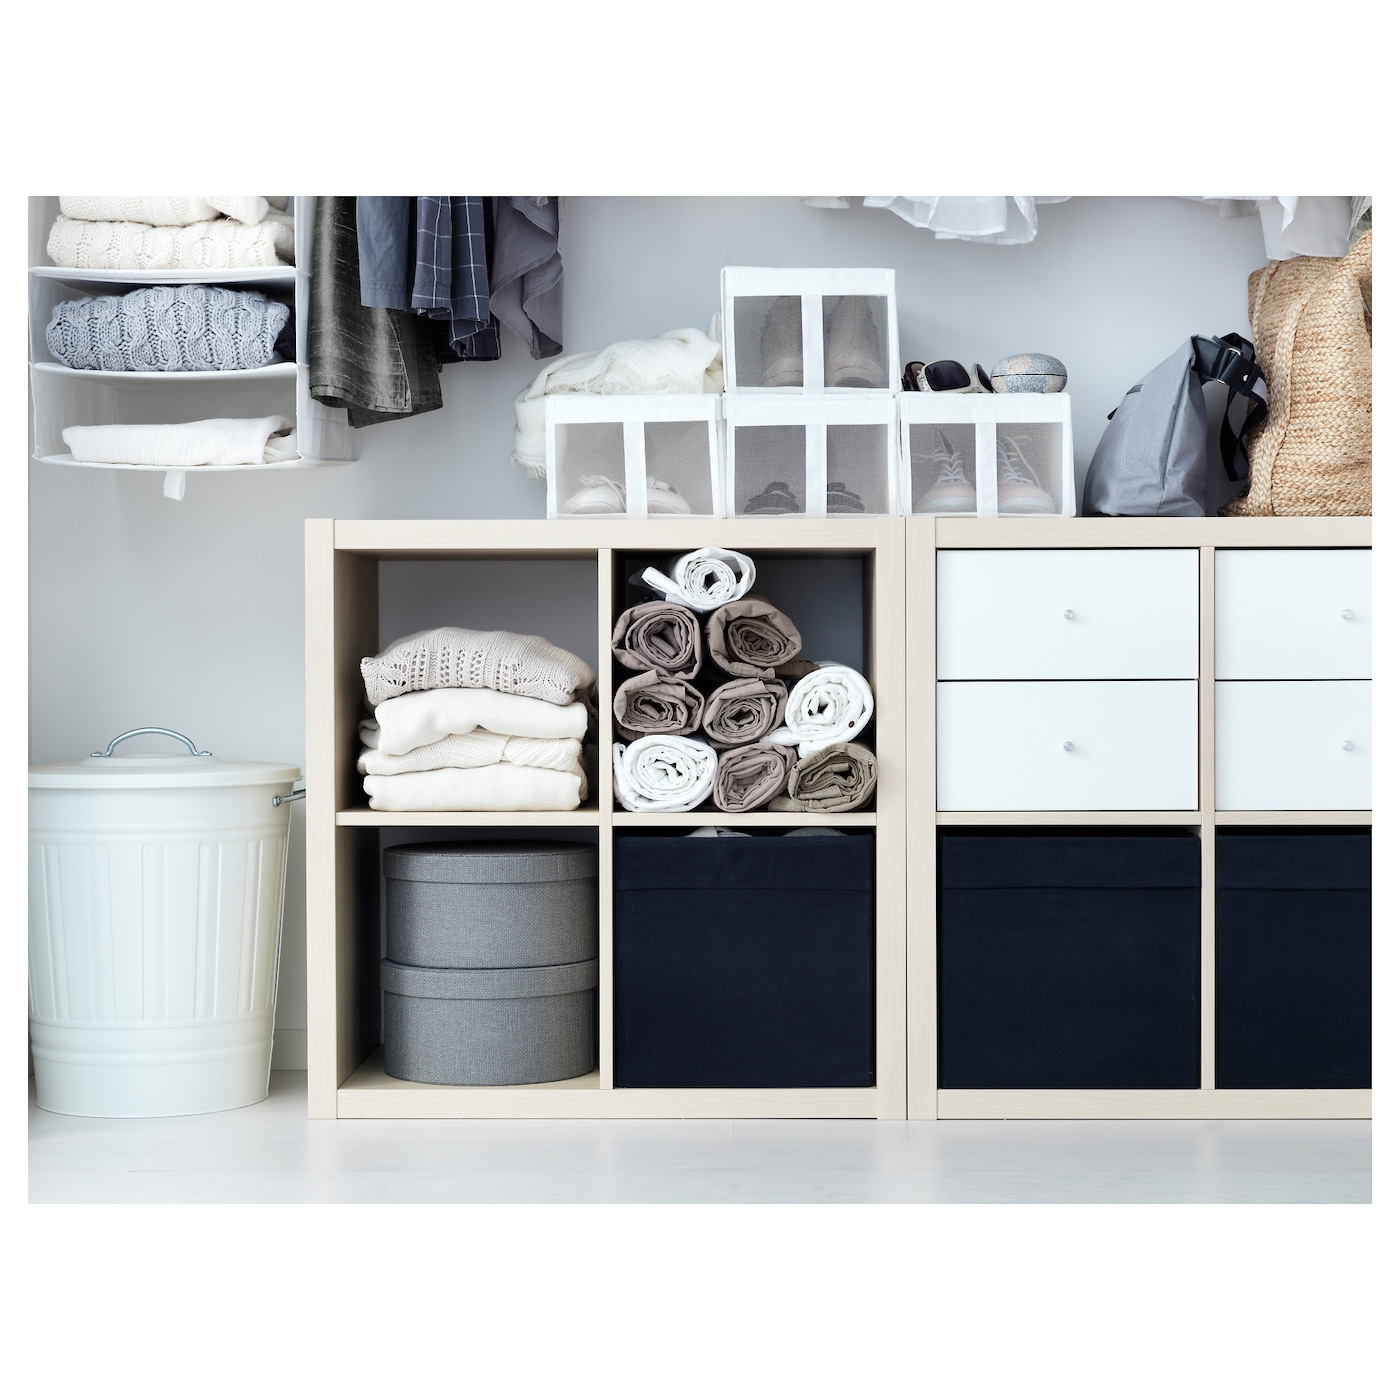 kallax shelving unit birch effect 77x77 cm ikea. Black Bedroom Furniture Sets. Home Design Ideas